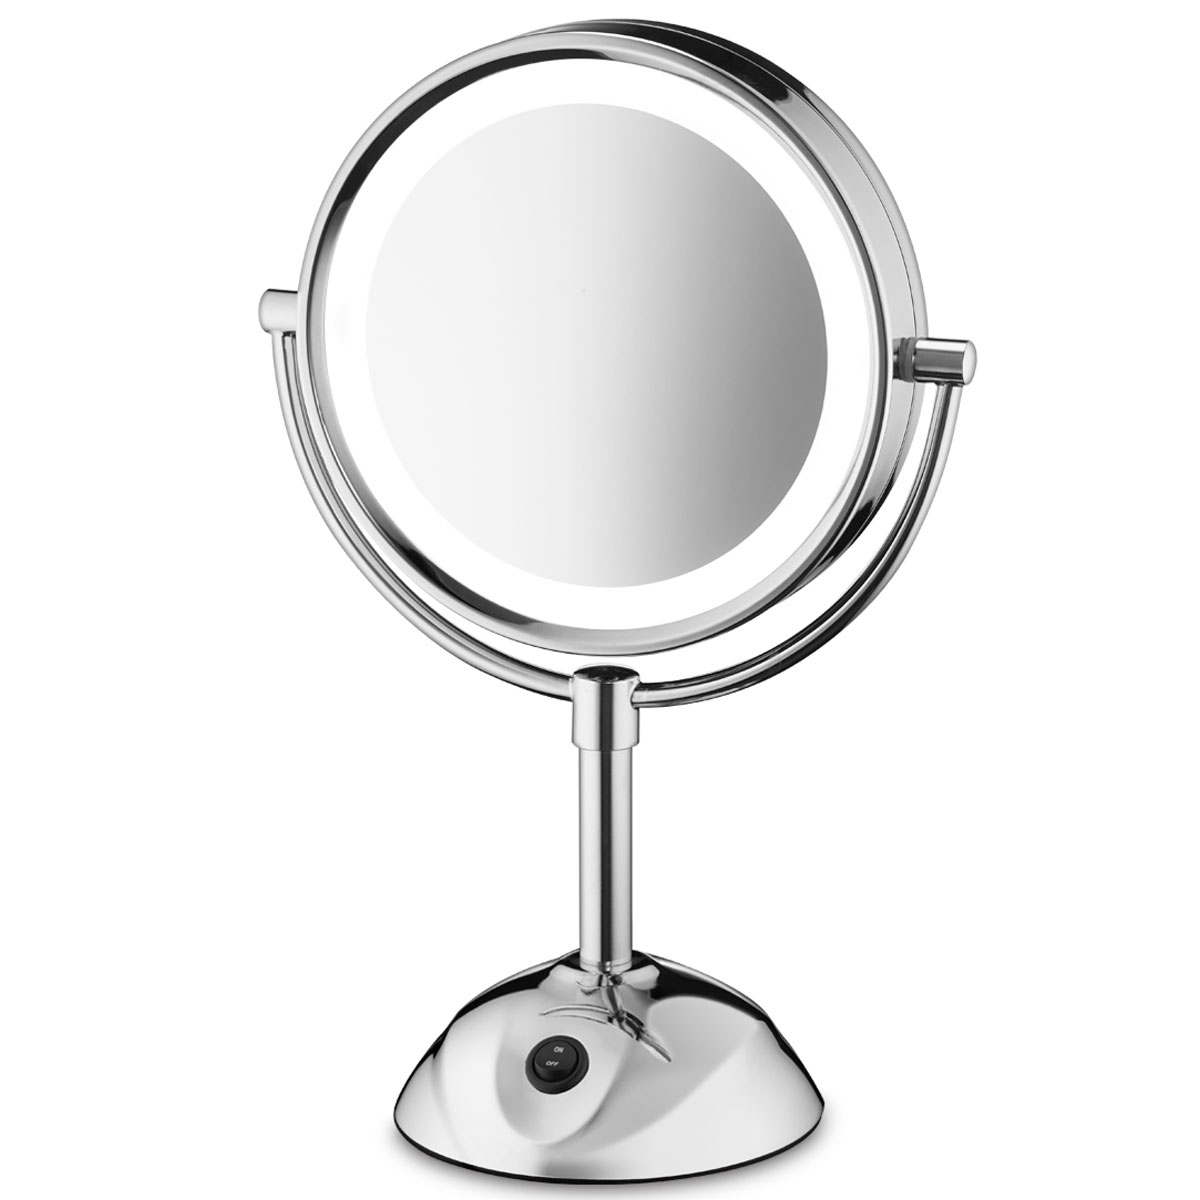 Conair Lighted Makeup Mirror.Conair Be119cwh 8 5 Led Lighted Vanity Mirror 1x 5x Magnification Chrome 4 Per Case Price Per Each